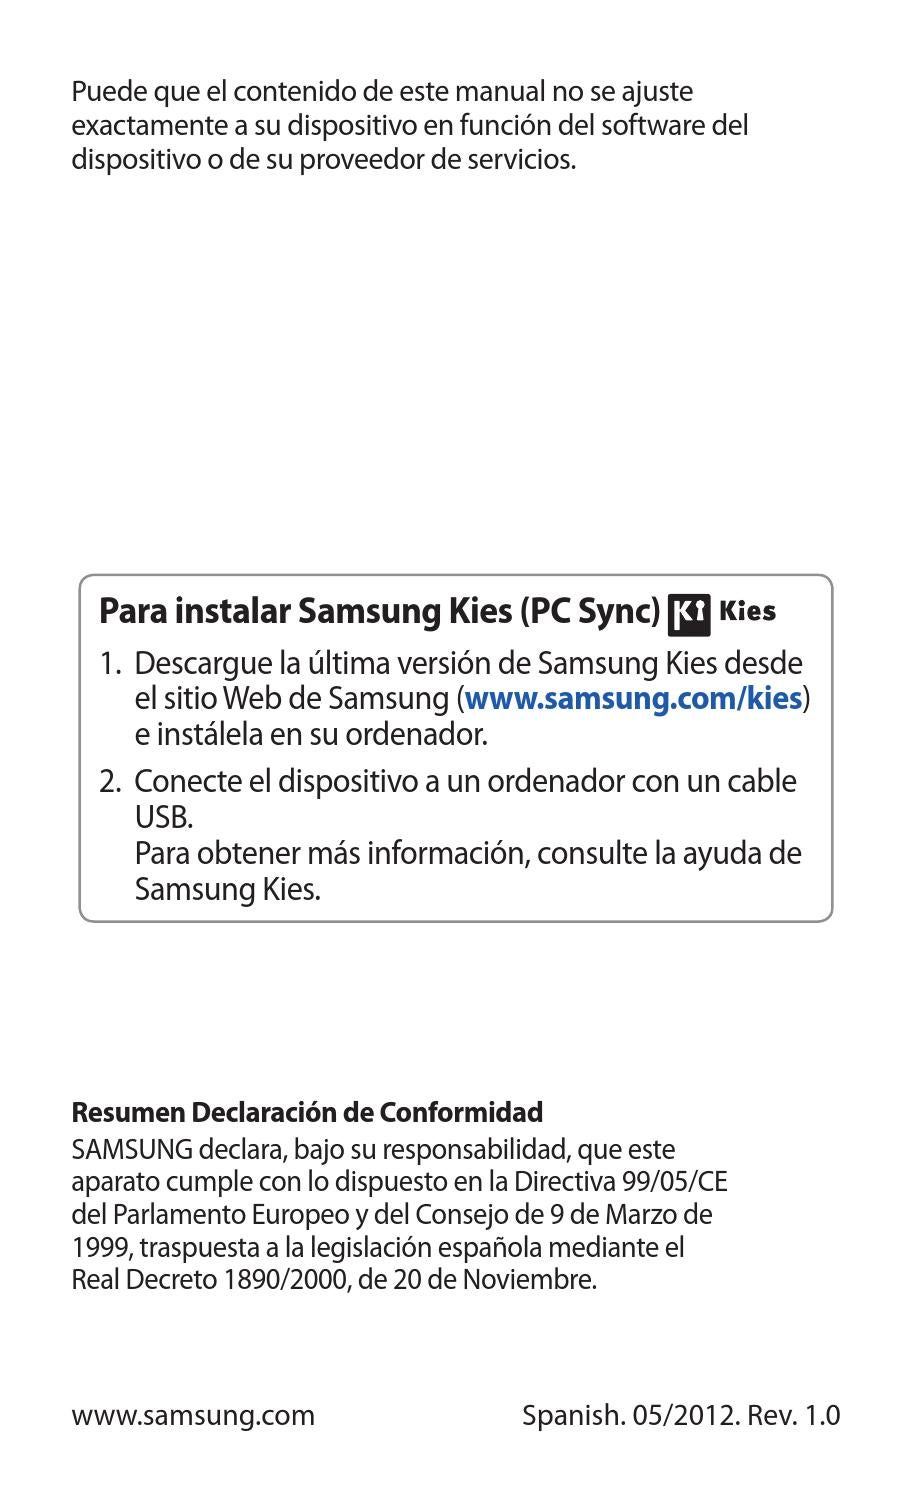 Samsung Galaxy S3 GT-i9300 Manual de usuario by Javier Lopez - issuu